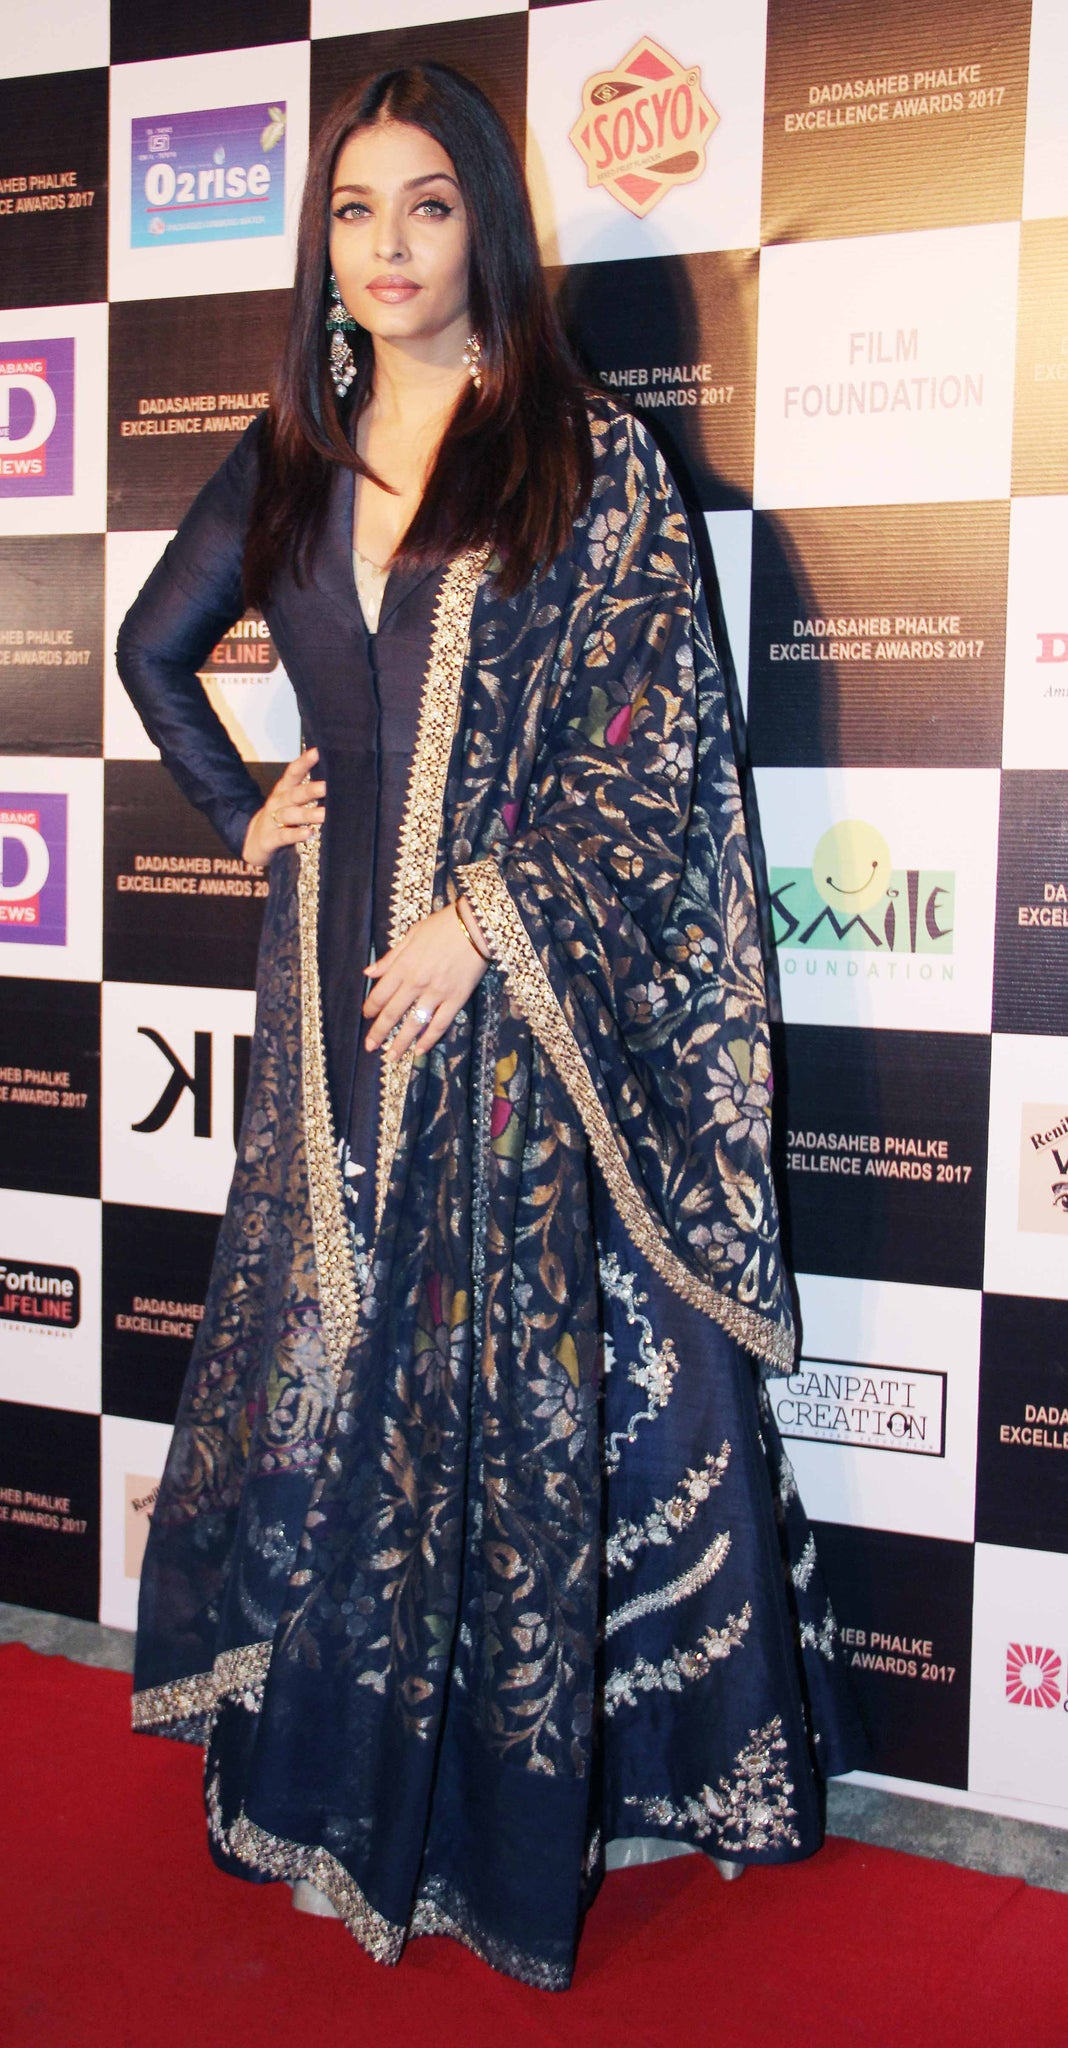 Aishwarya Rai Bachchan Looked Drop Dead Gorgeous In Blue Anarkali Suit By Anju Modi